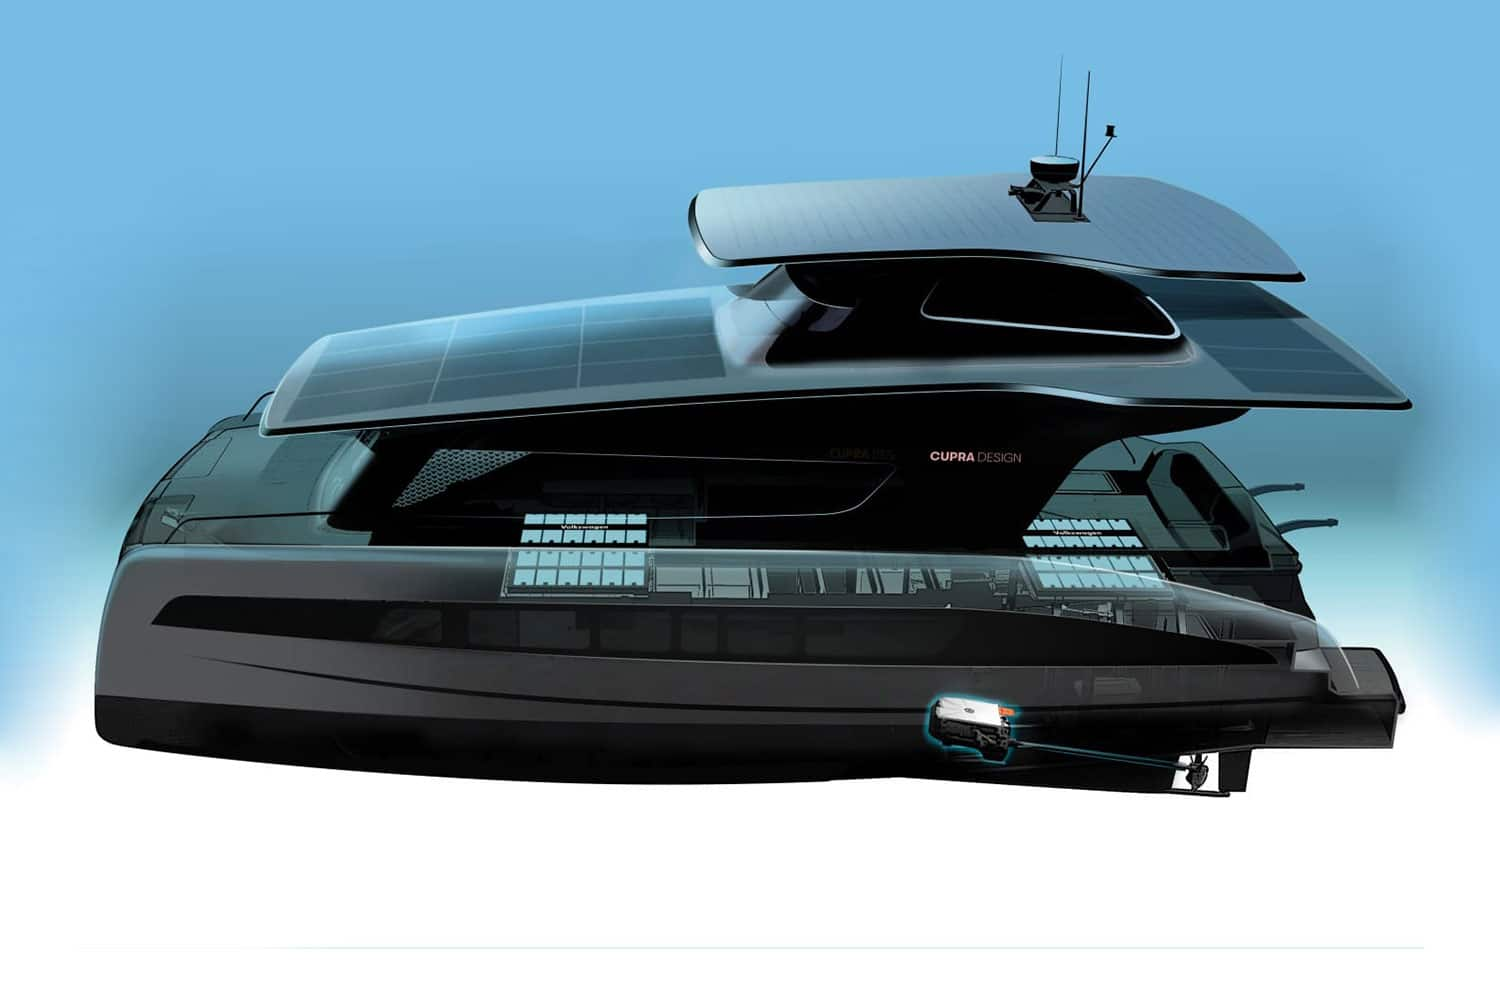 Silent-Yachts is working on a new solar-powered electric catamaran